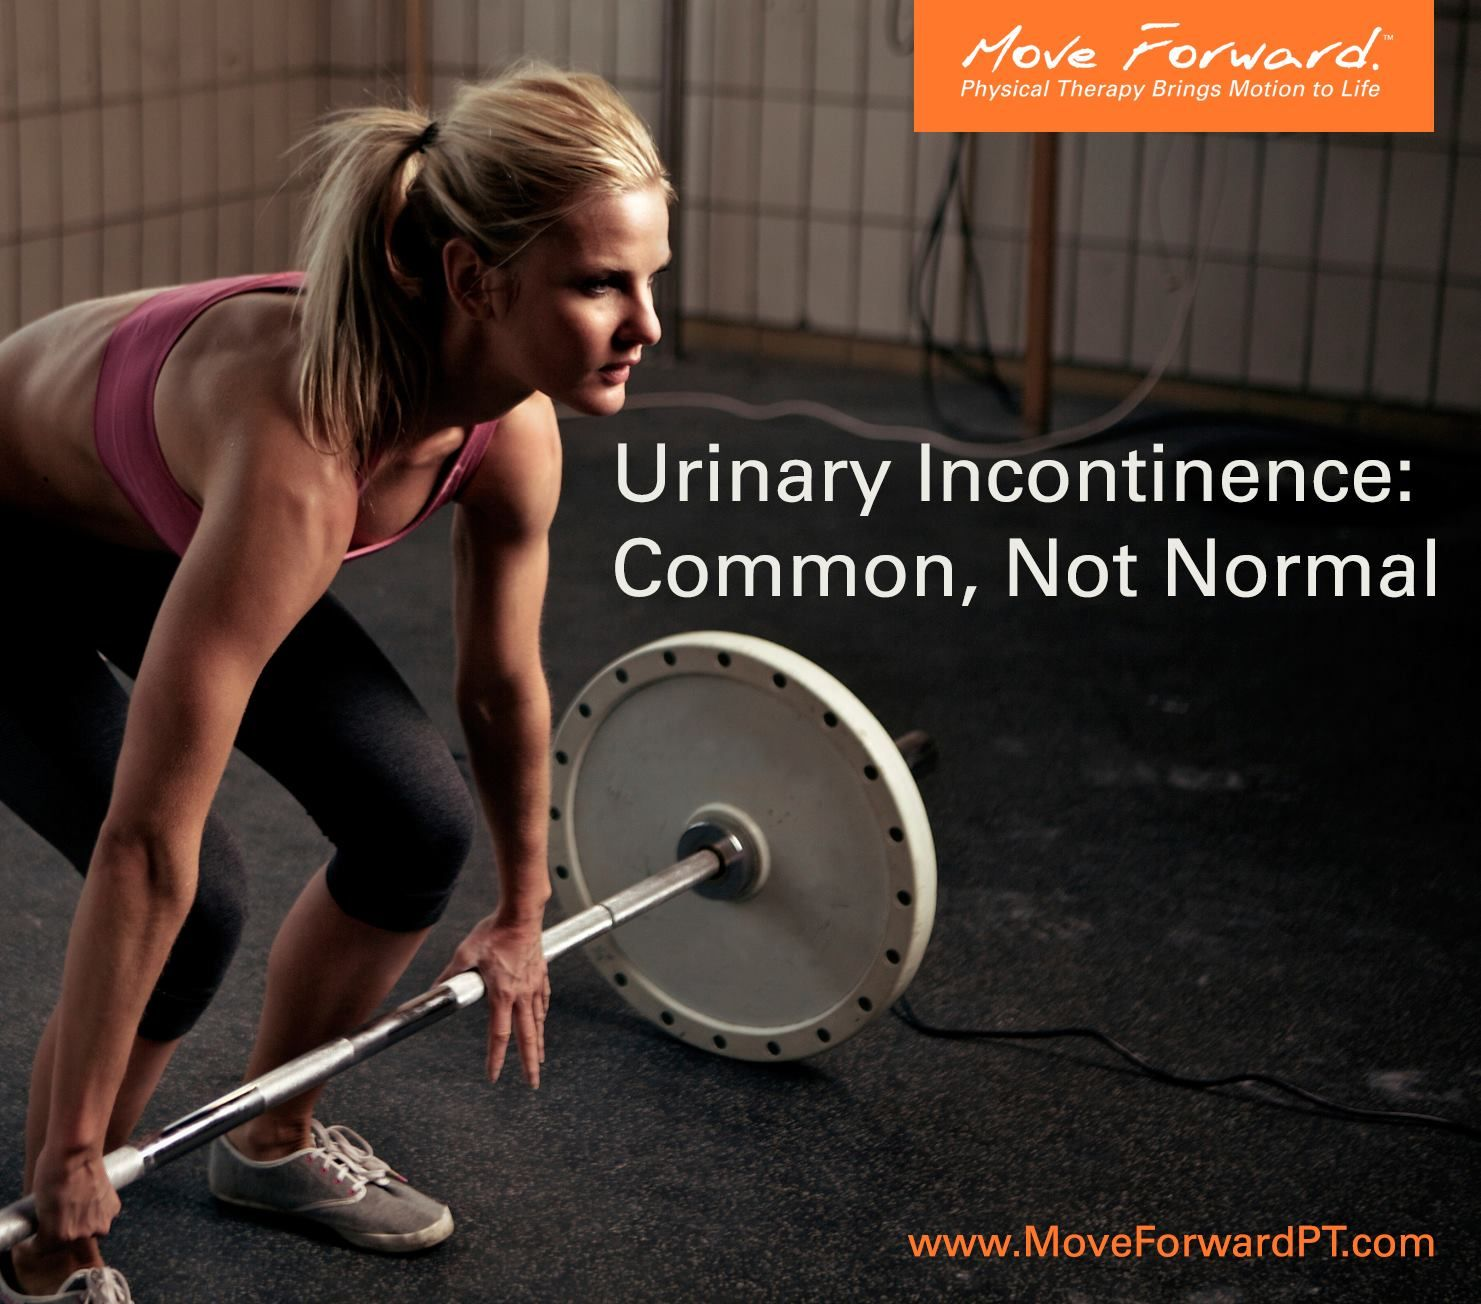 It S Not Uncommon For Women And Men To Leak Urine During Workouts But That Doesn T Mean It S Normal In A M Urinary Incontinence Incontinence Moving Forward